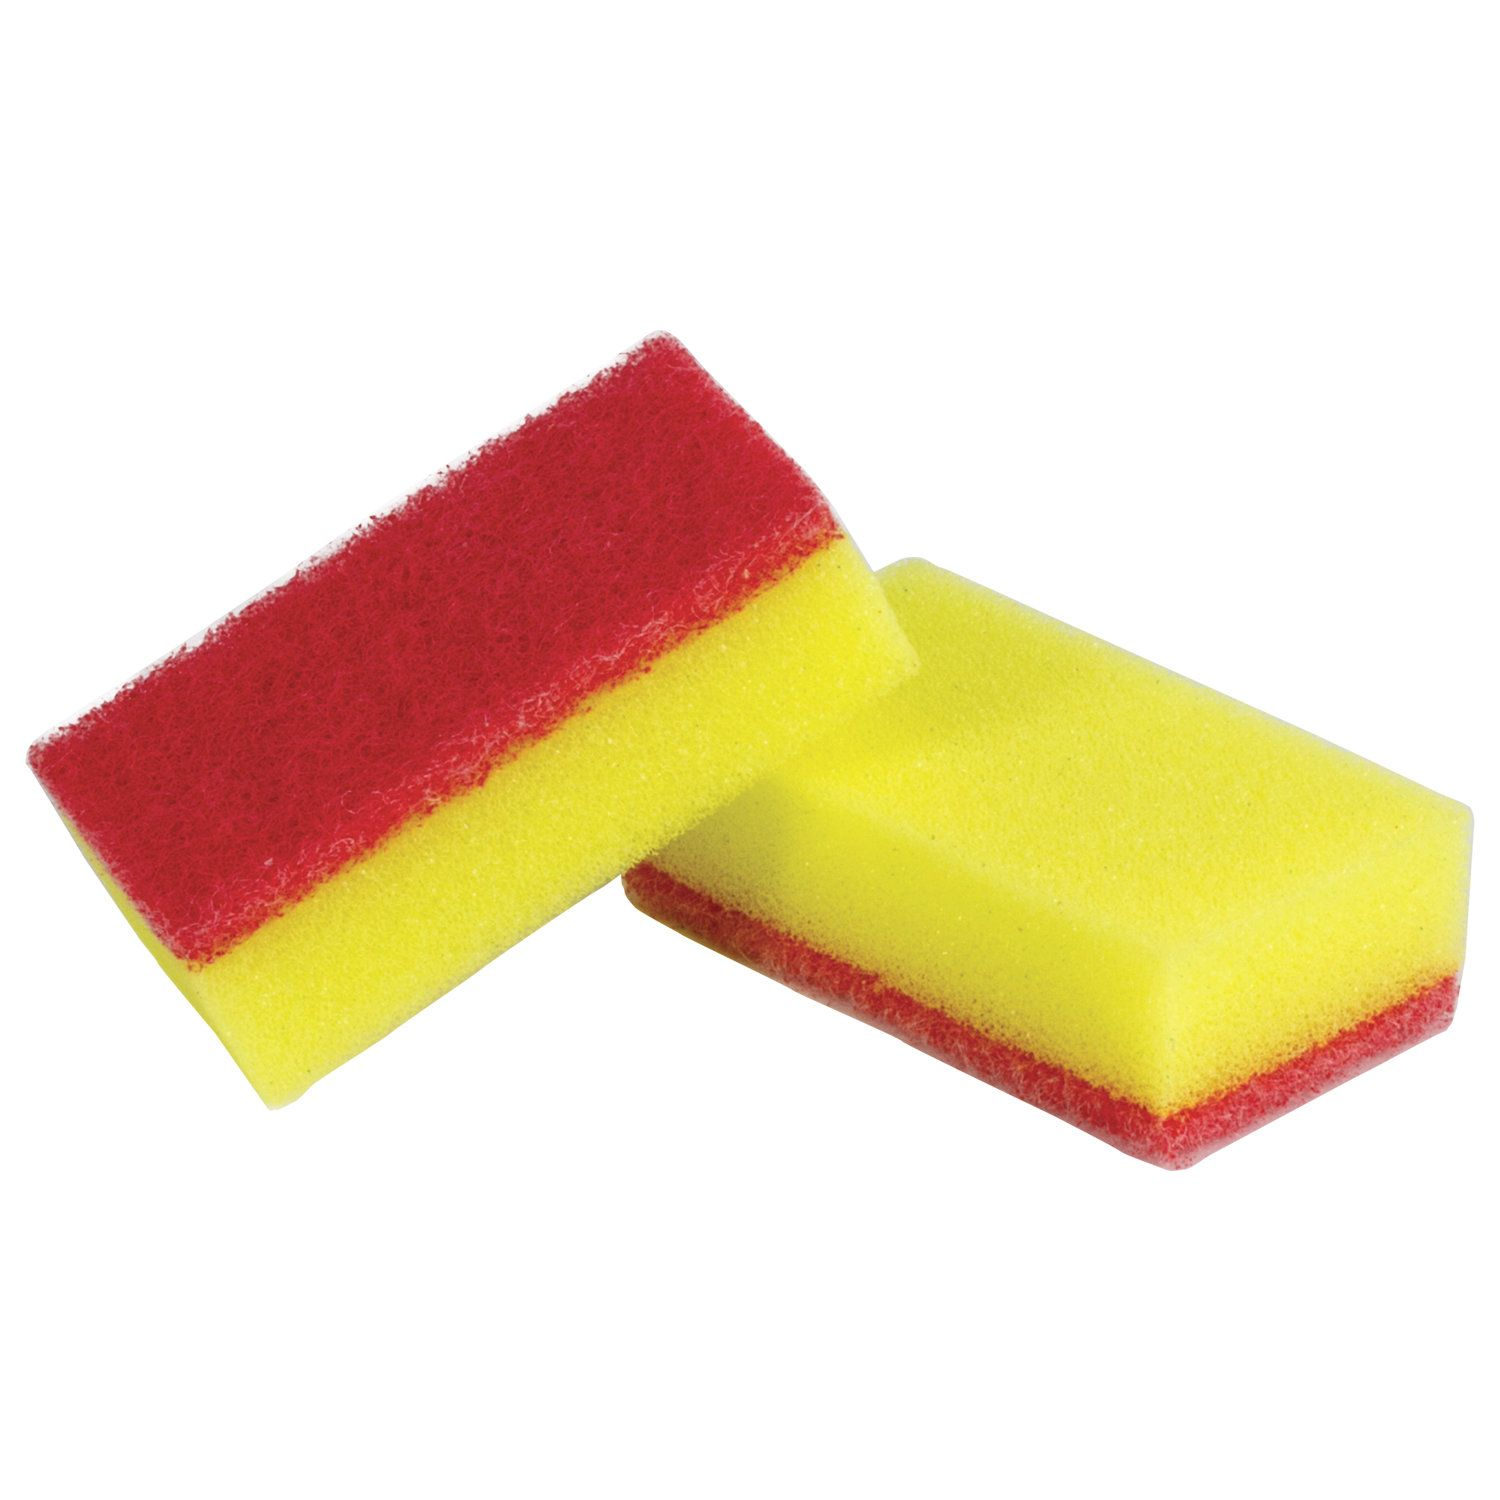 LYUBASHA / Household scouring sponges, foam rubber / abrasive, 20 x 65 x 95 mm, SET 10 pcs.